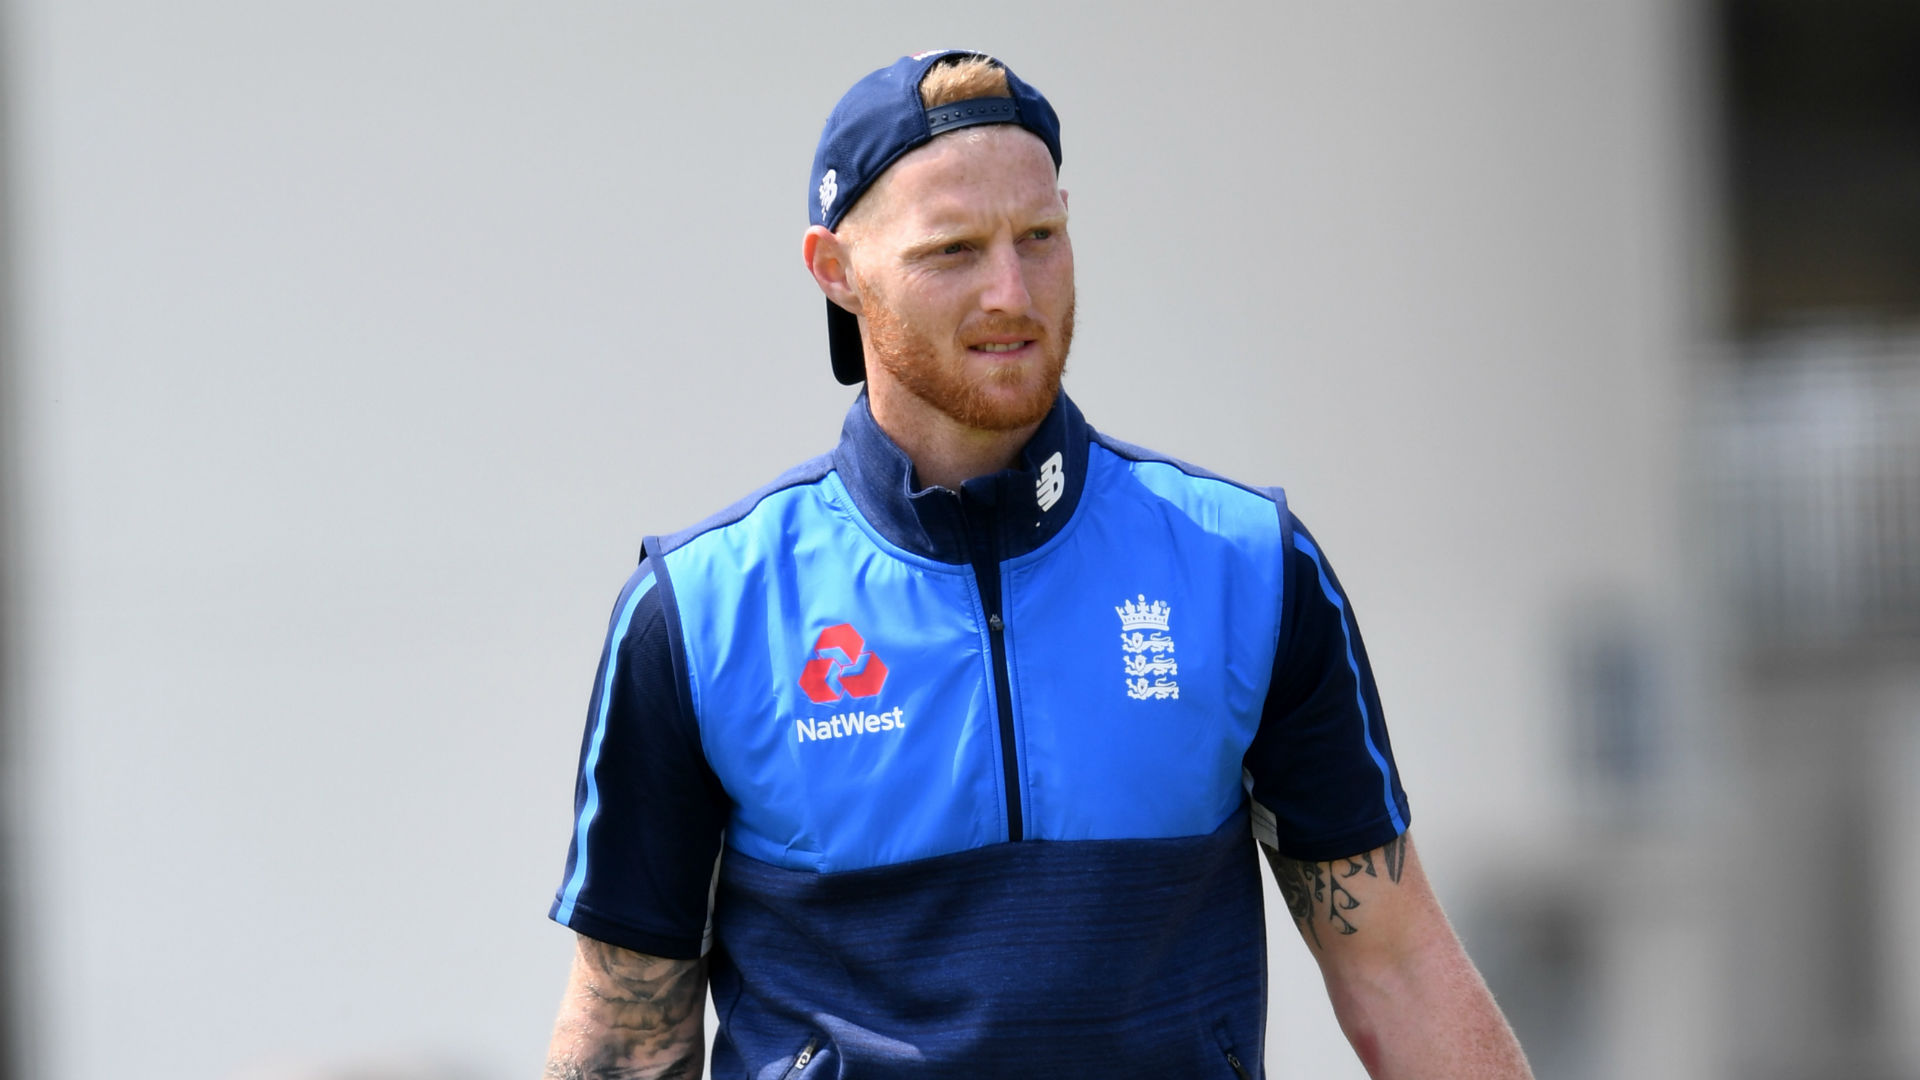 The Cricket Discipline Commission (CDC) has handed Ben Stokes and Alex Hales backdated bans.